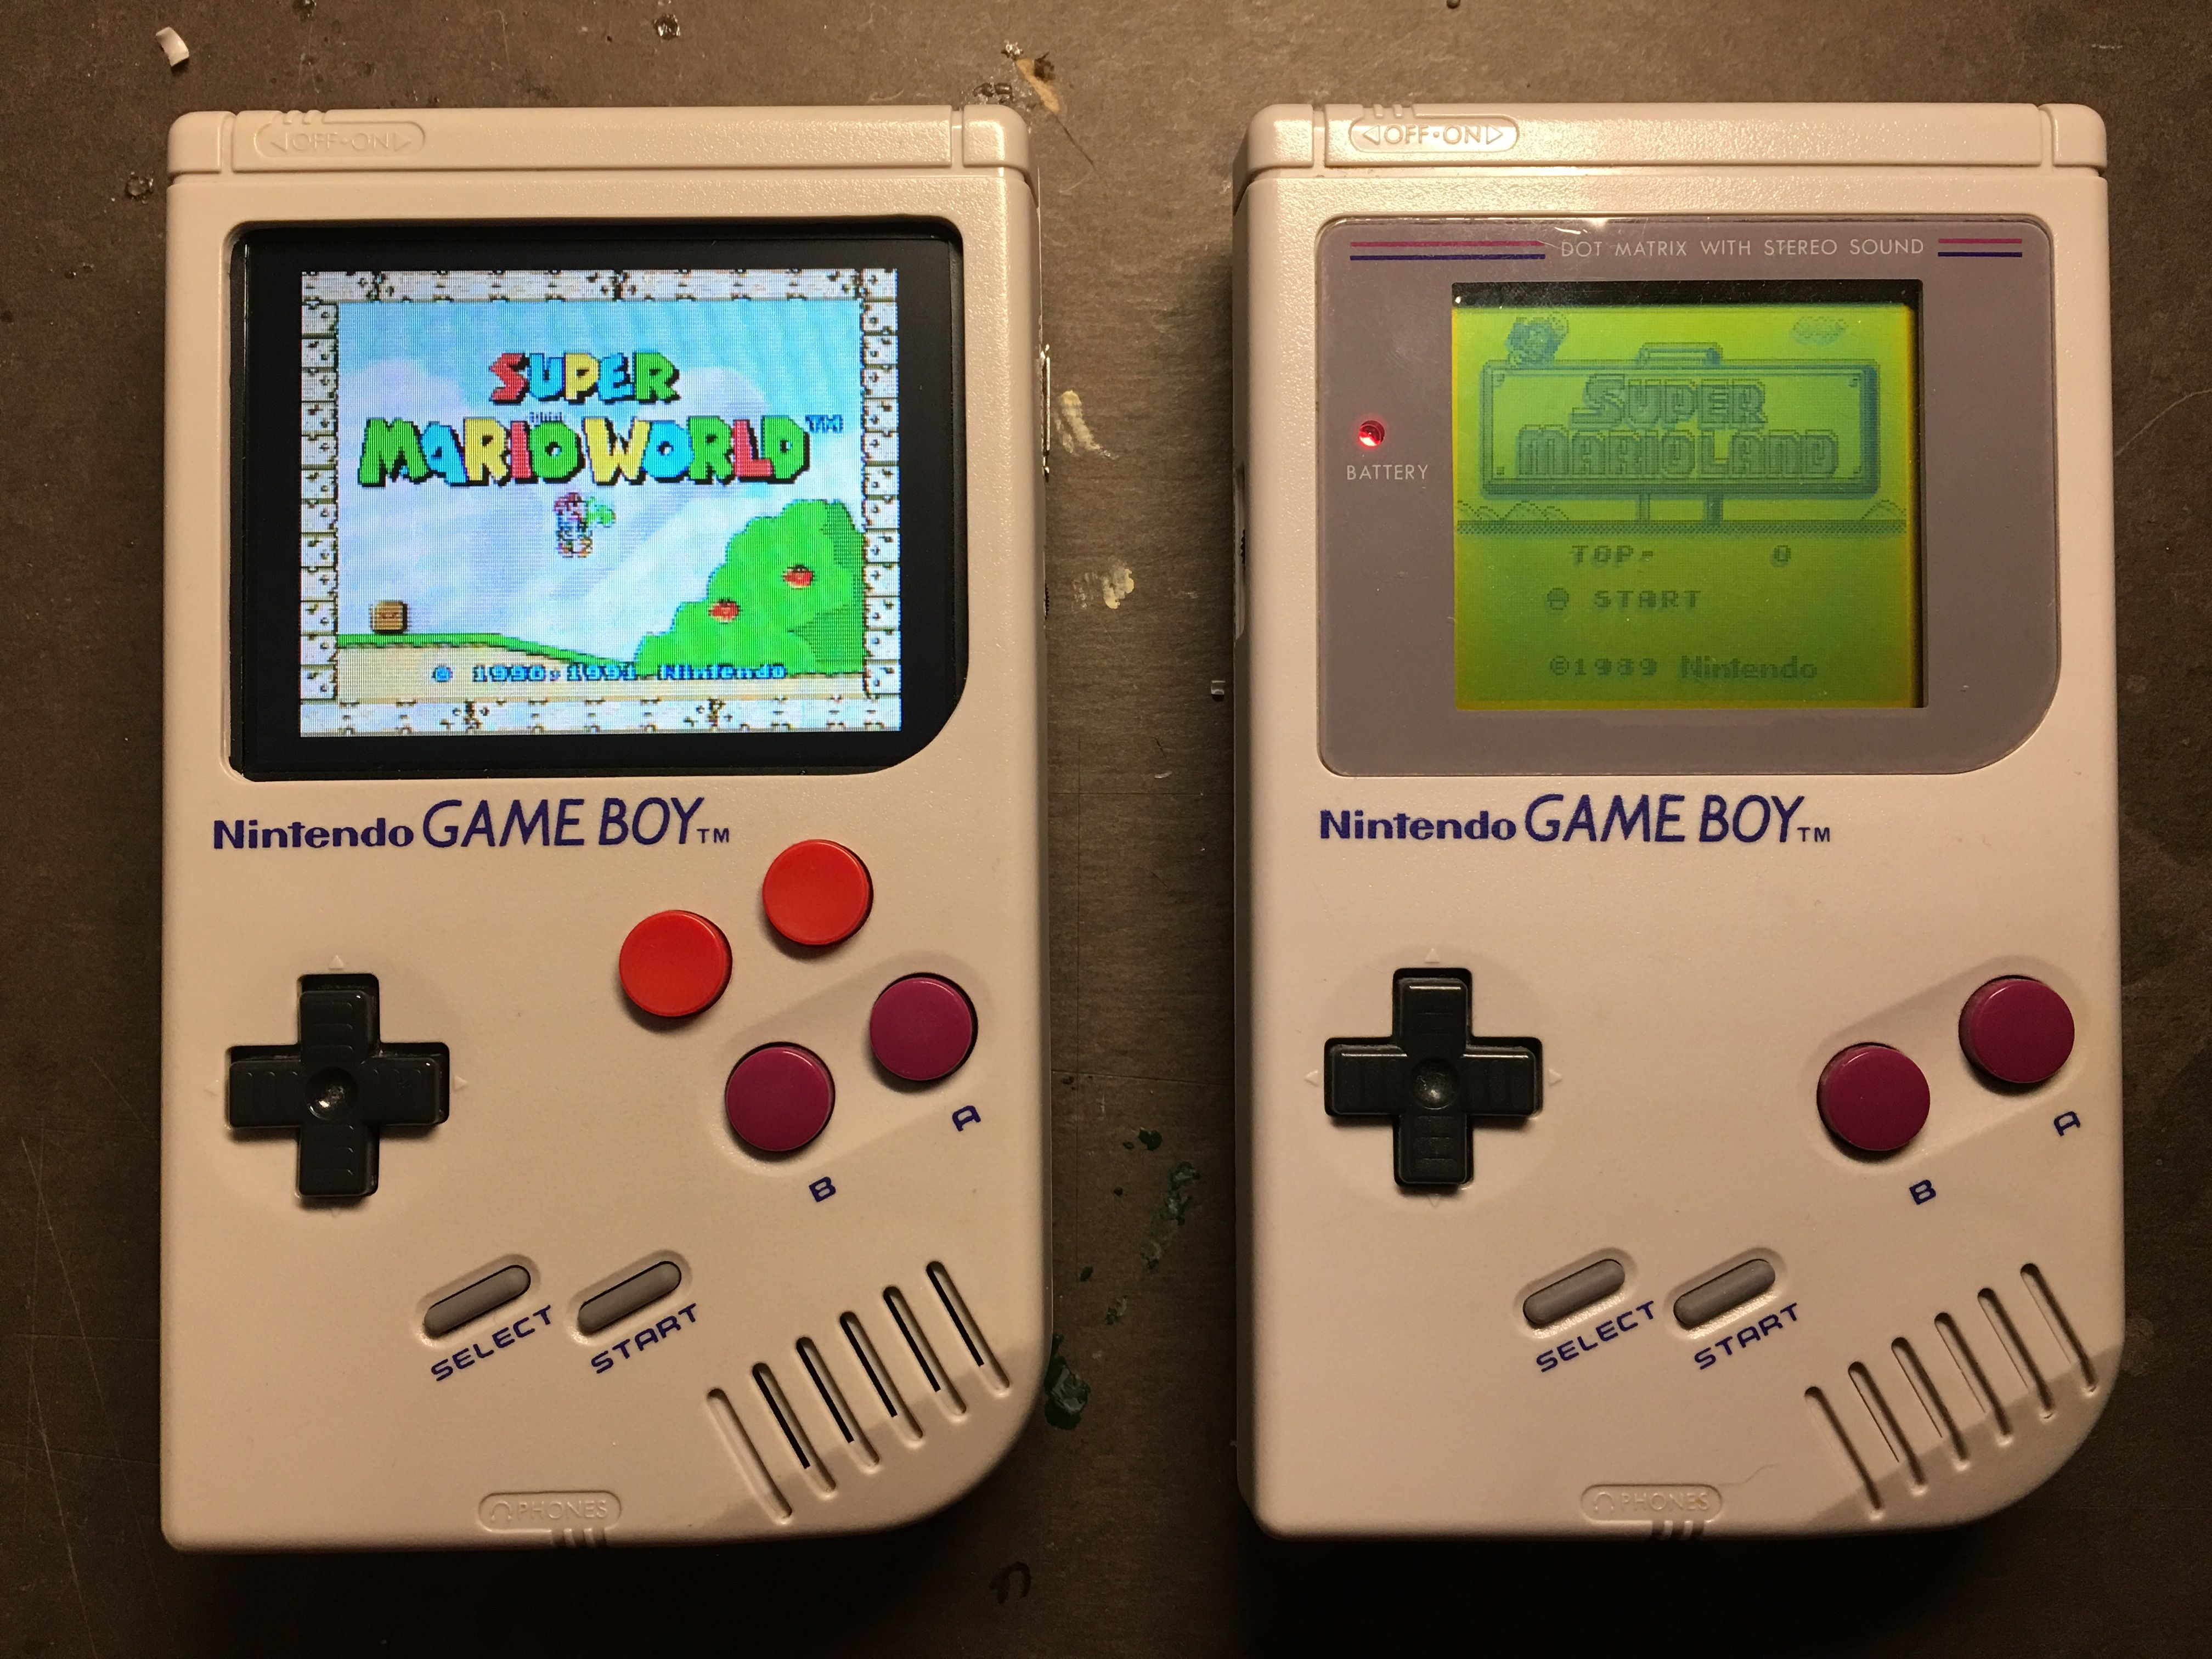 Gameboy color and advance rpg games - By Replacing The Guts Of A Game Boy With A Raspberry Pi Zero Processor And Some